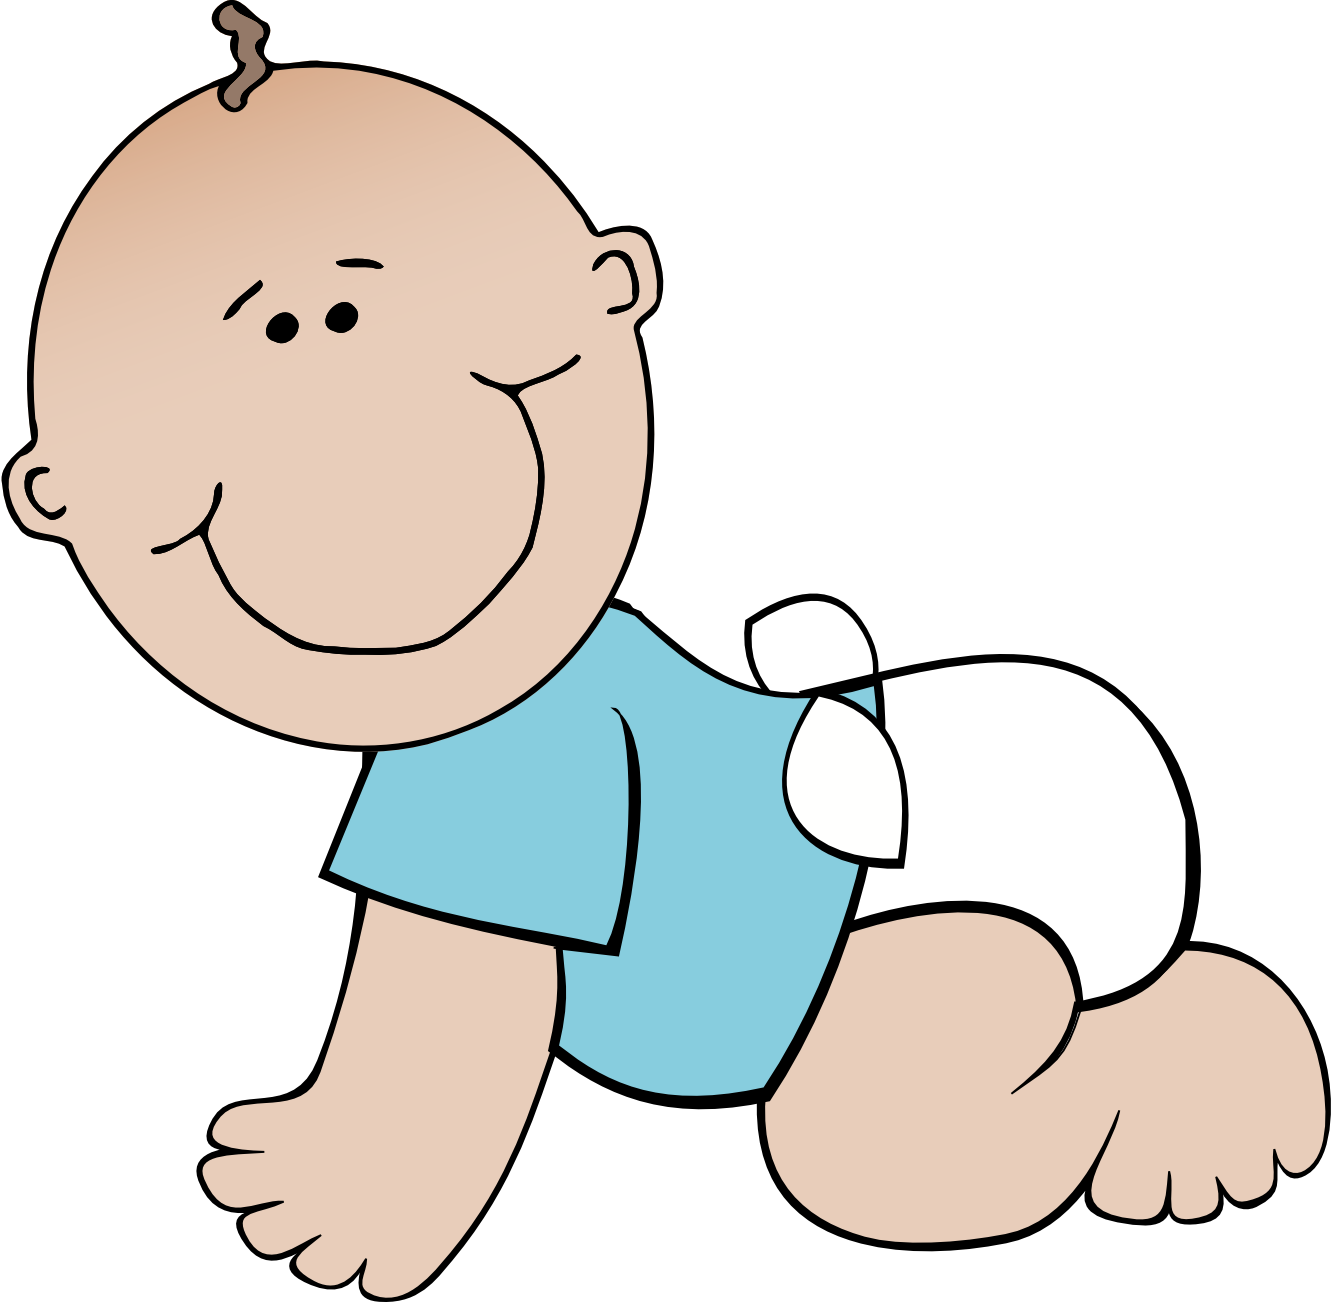 Dying clipart drought Baby clipart baby Images Free